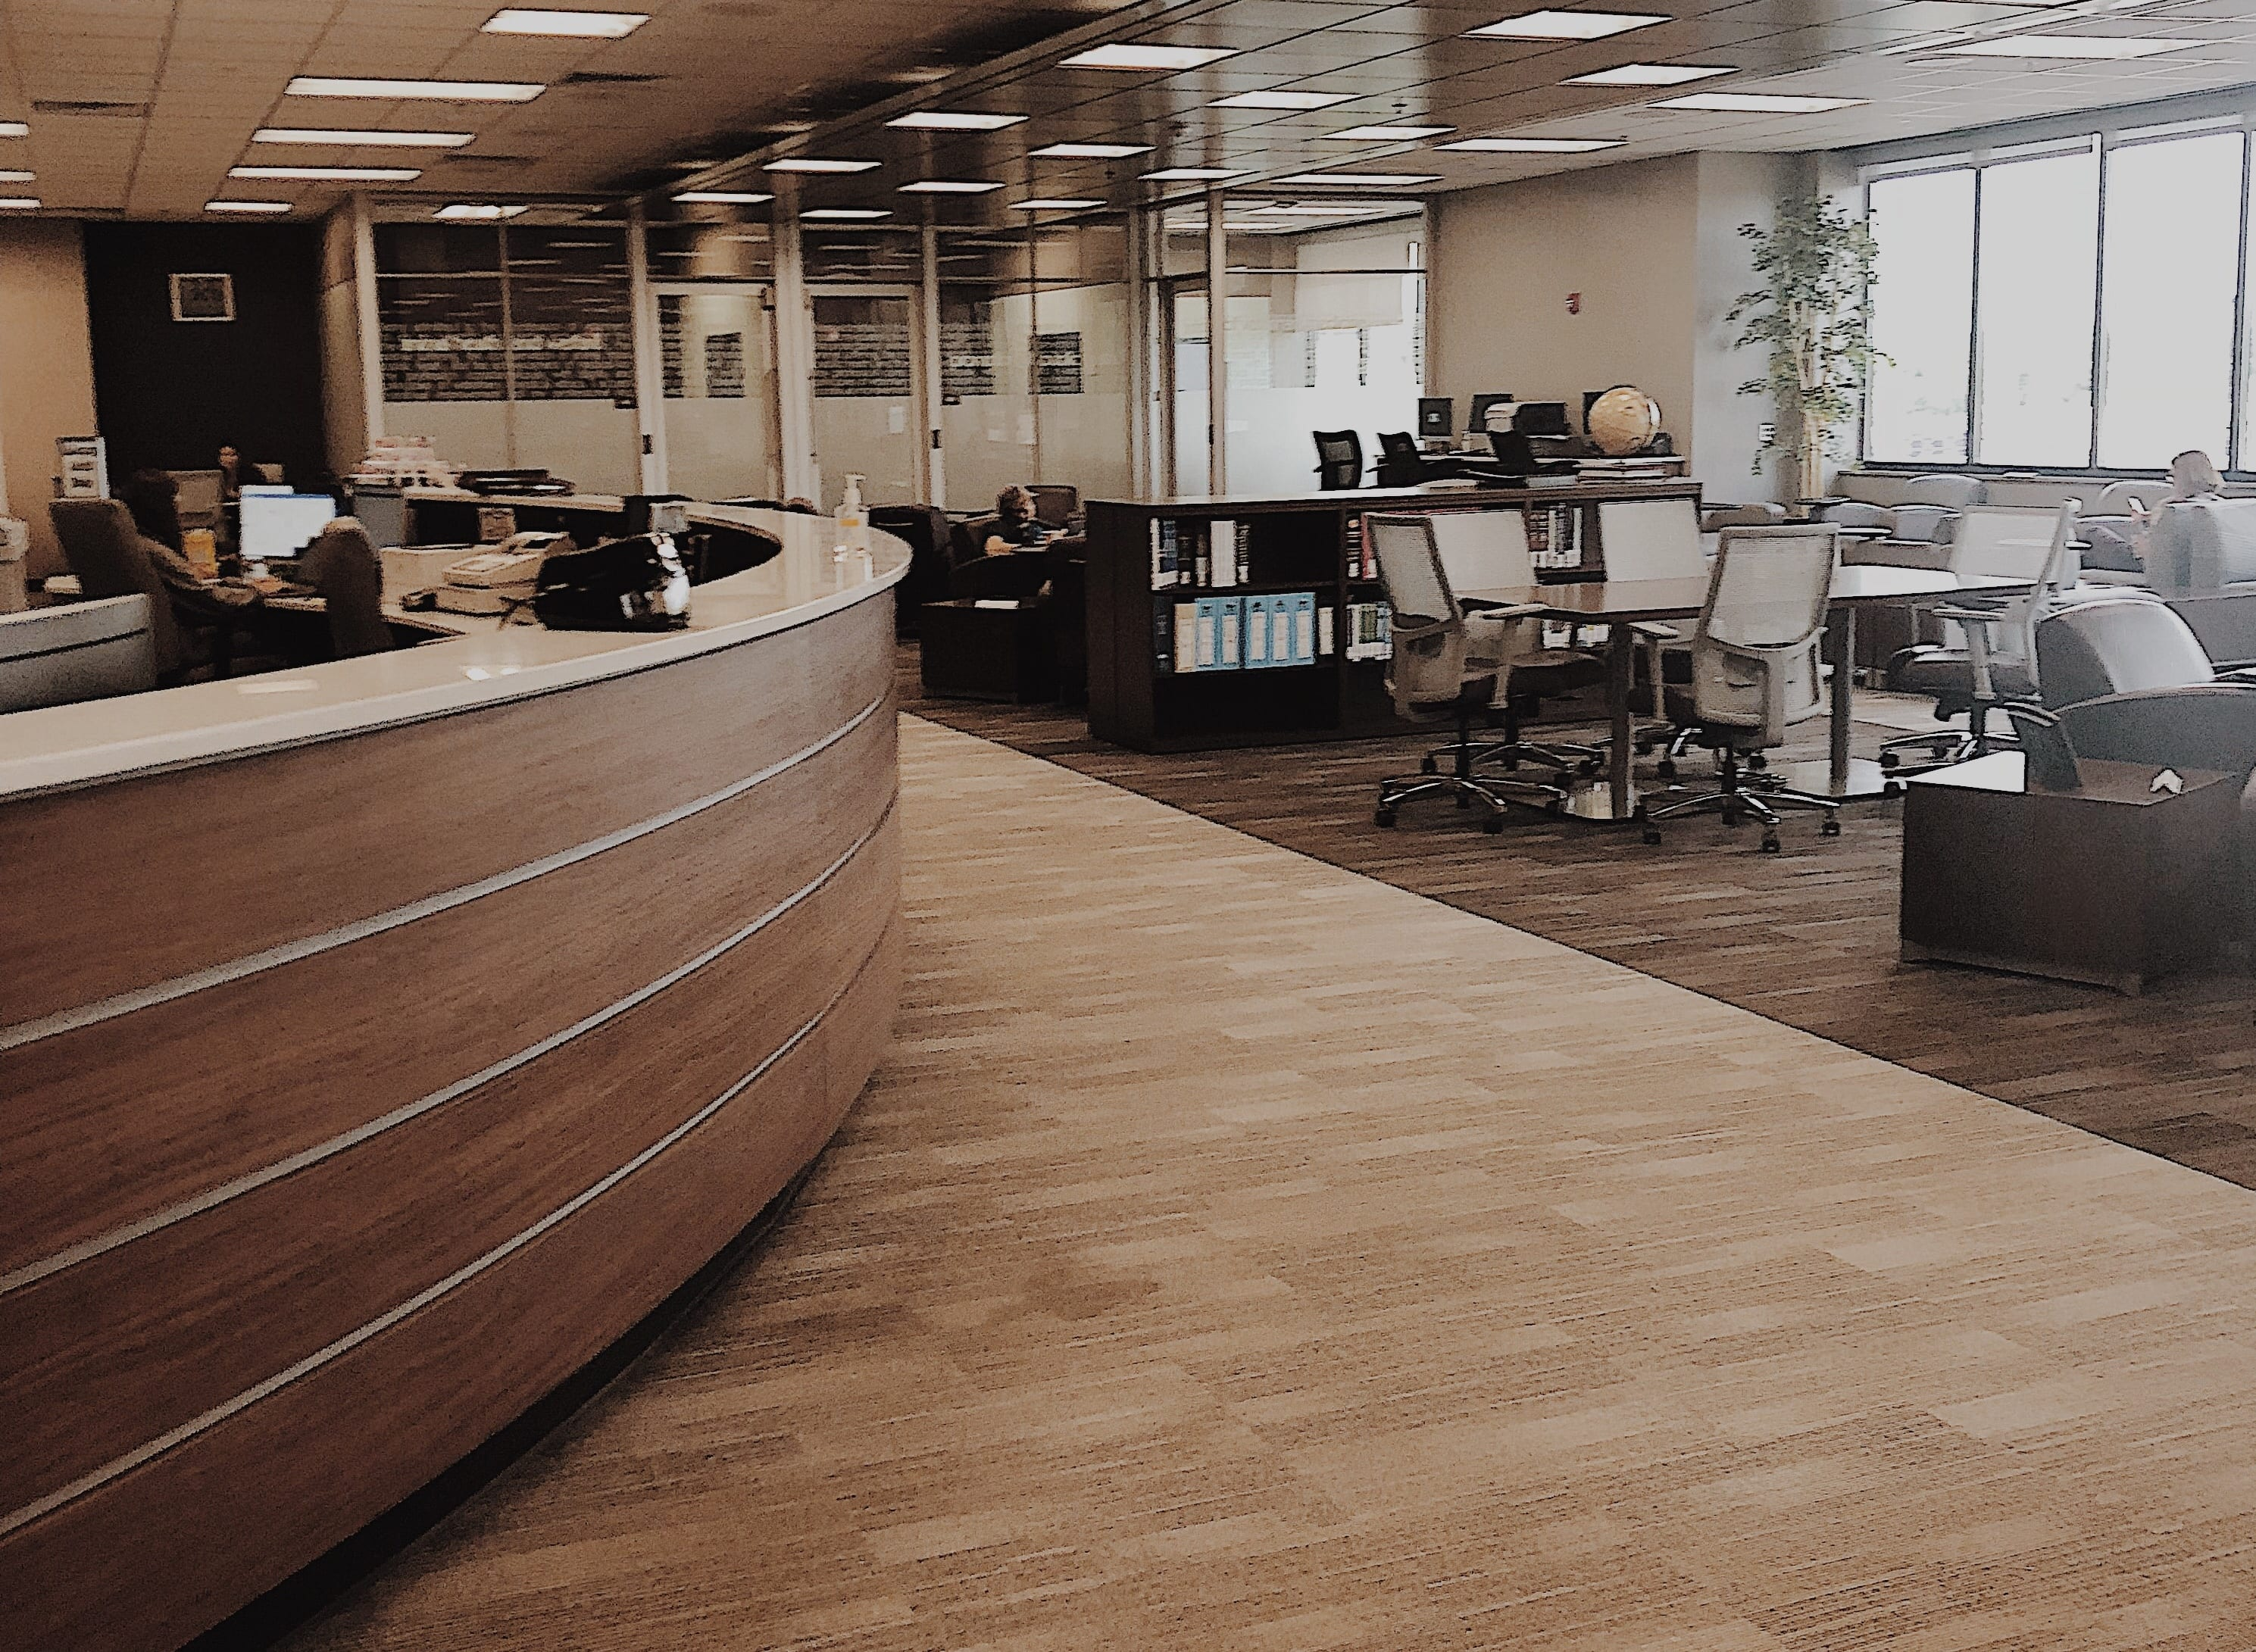 A curved help desk at the left is adjacent to a study area with tables and office chairs, as well a variety of soft seating.